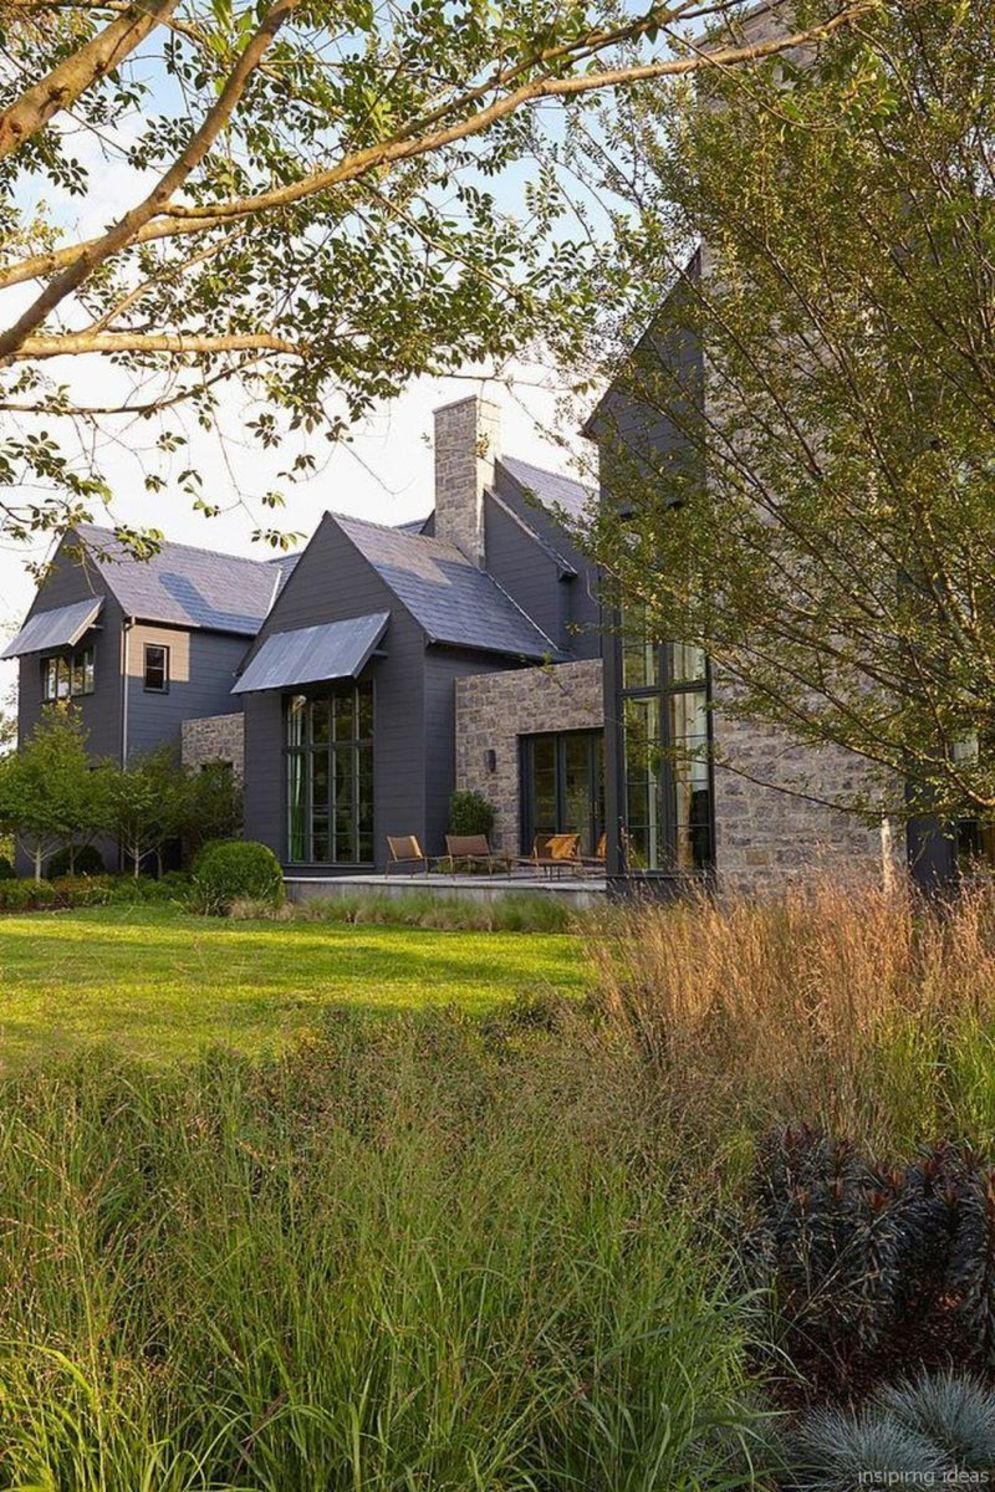 Modern house with new farmhouse exterior design pulling out country charm and warm welcoming display Image 42